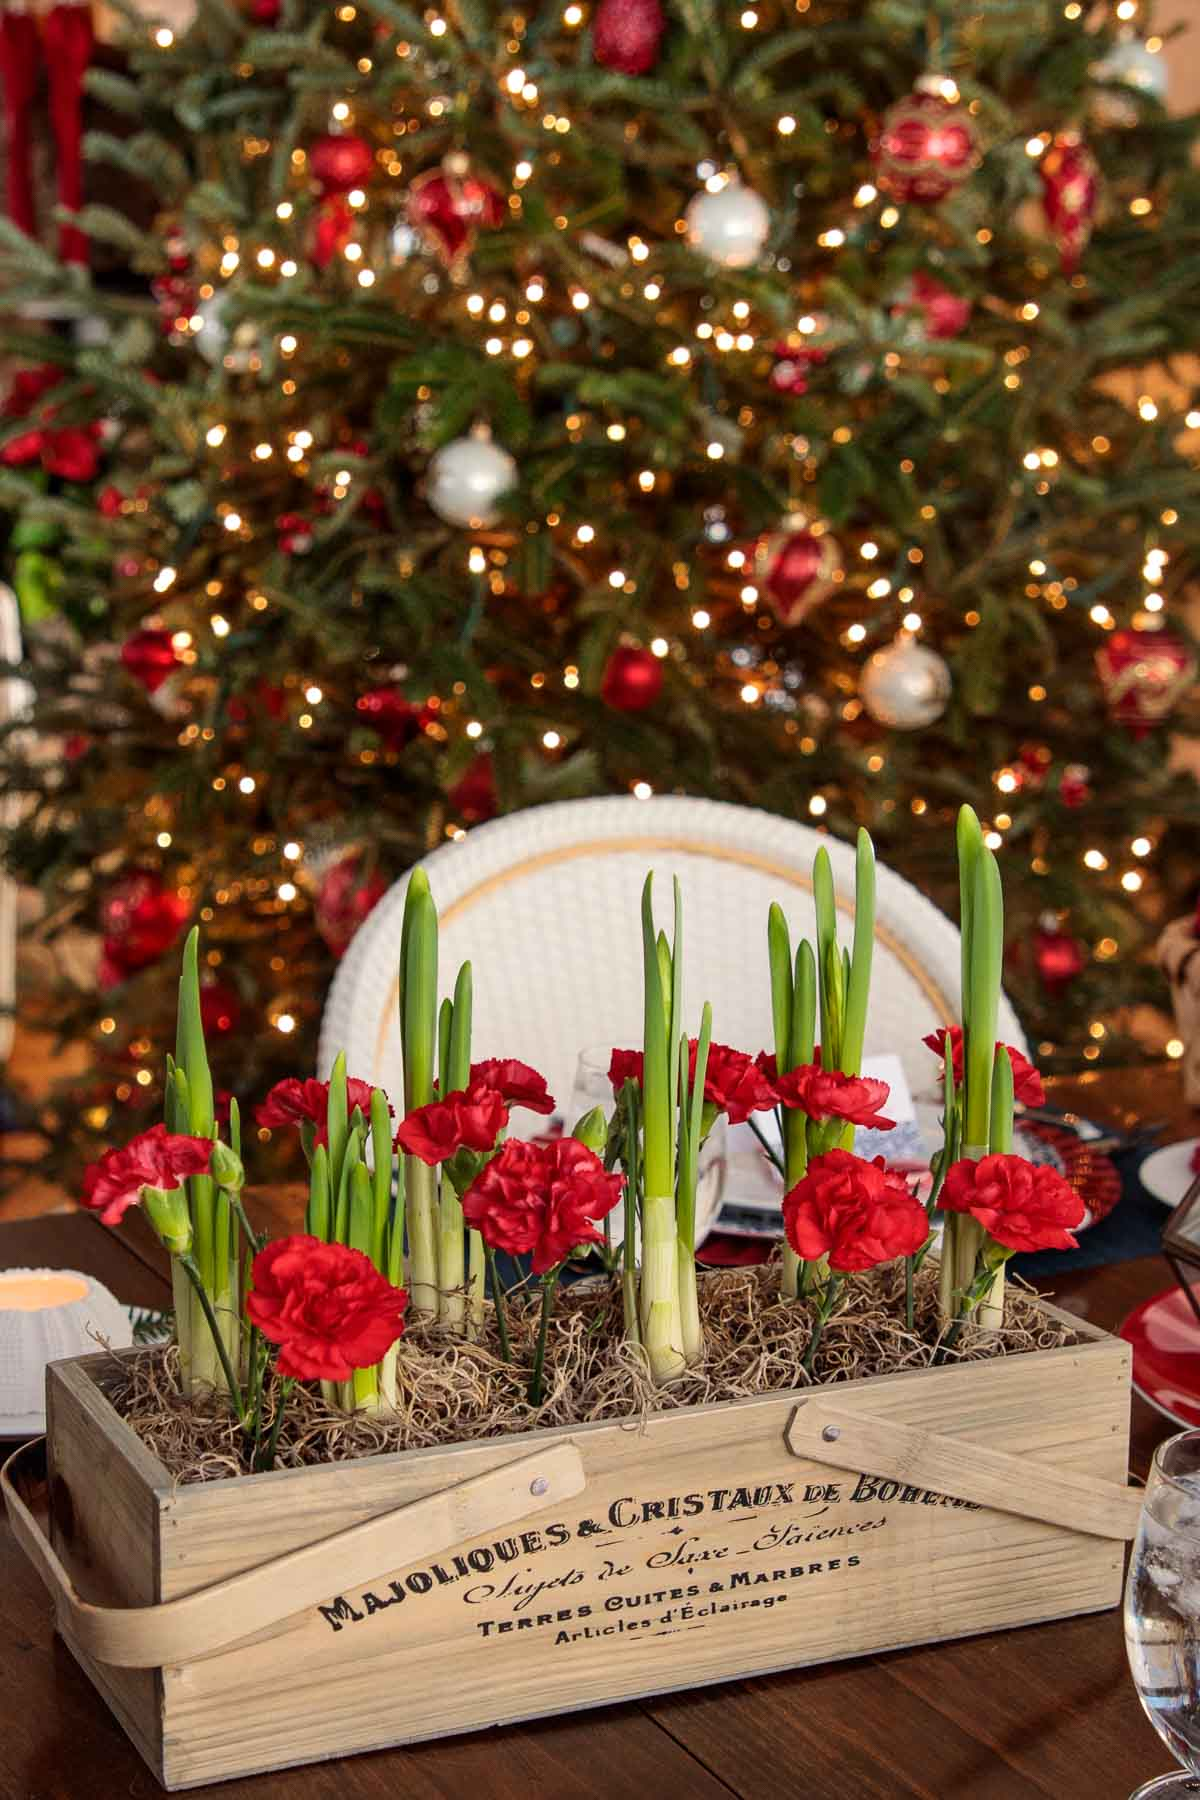 Photo of holiday flowers and tree decorations for Holiday Table Inspiration Ideas from The Café Sucre Farine.com.